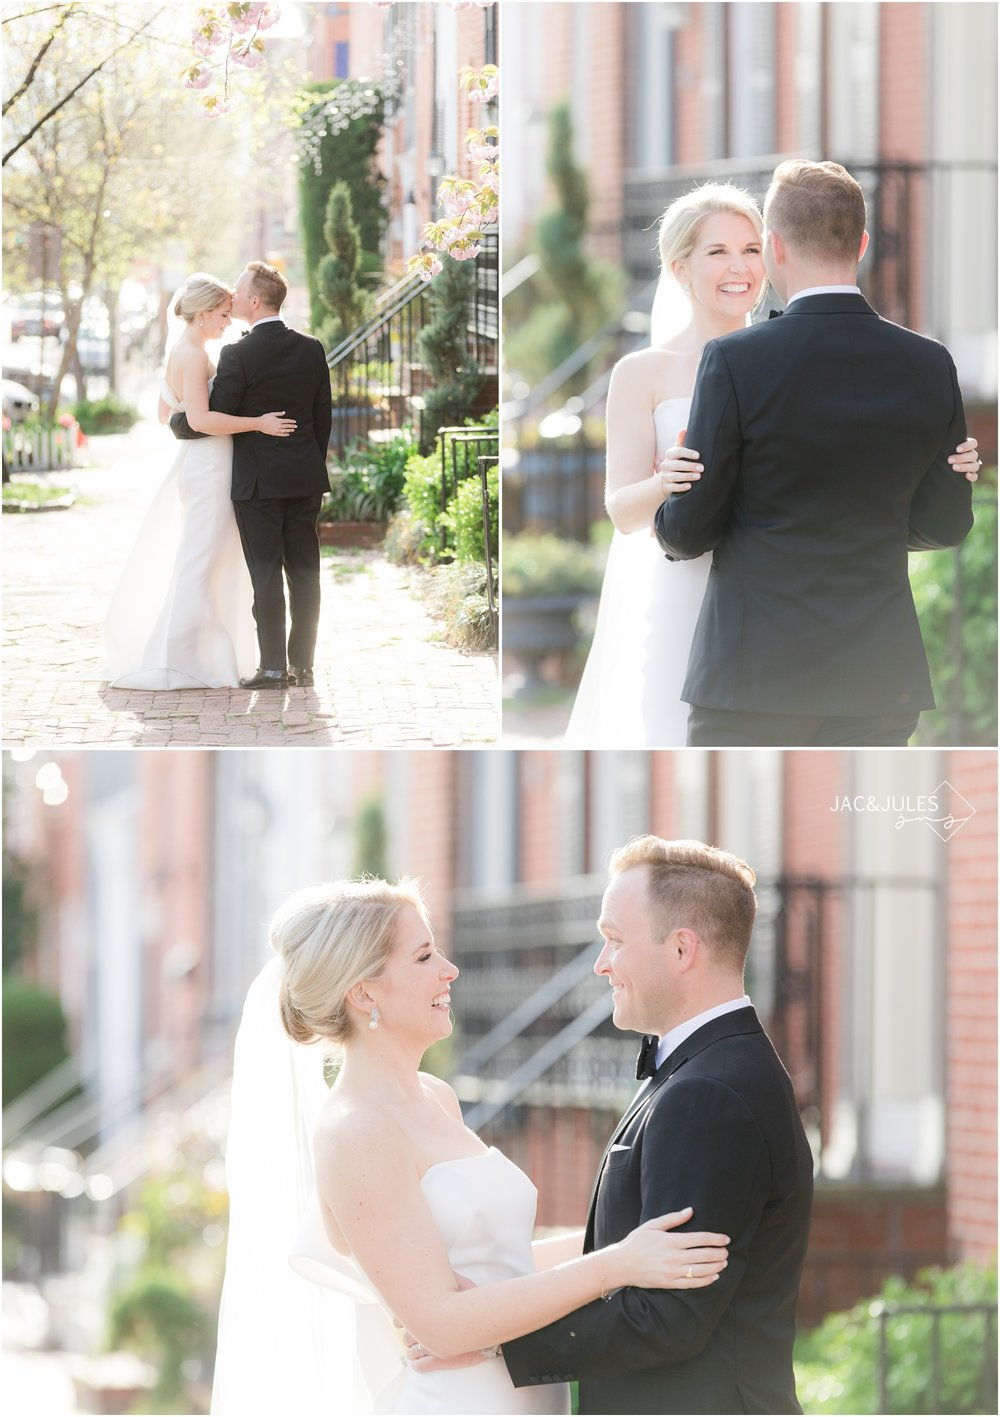 Dreamy wedding portraits on a street in downtown Baltimore, MD.